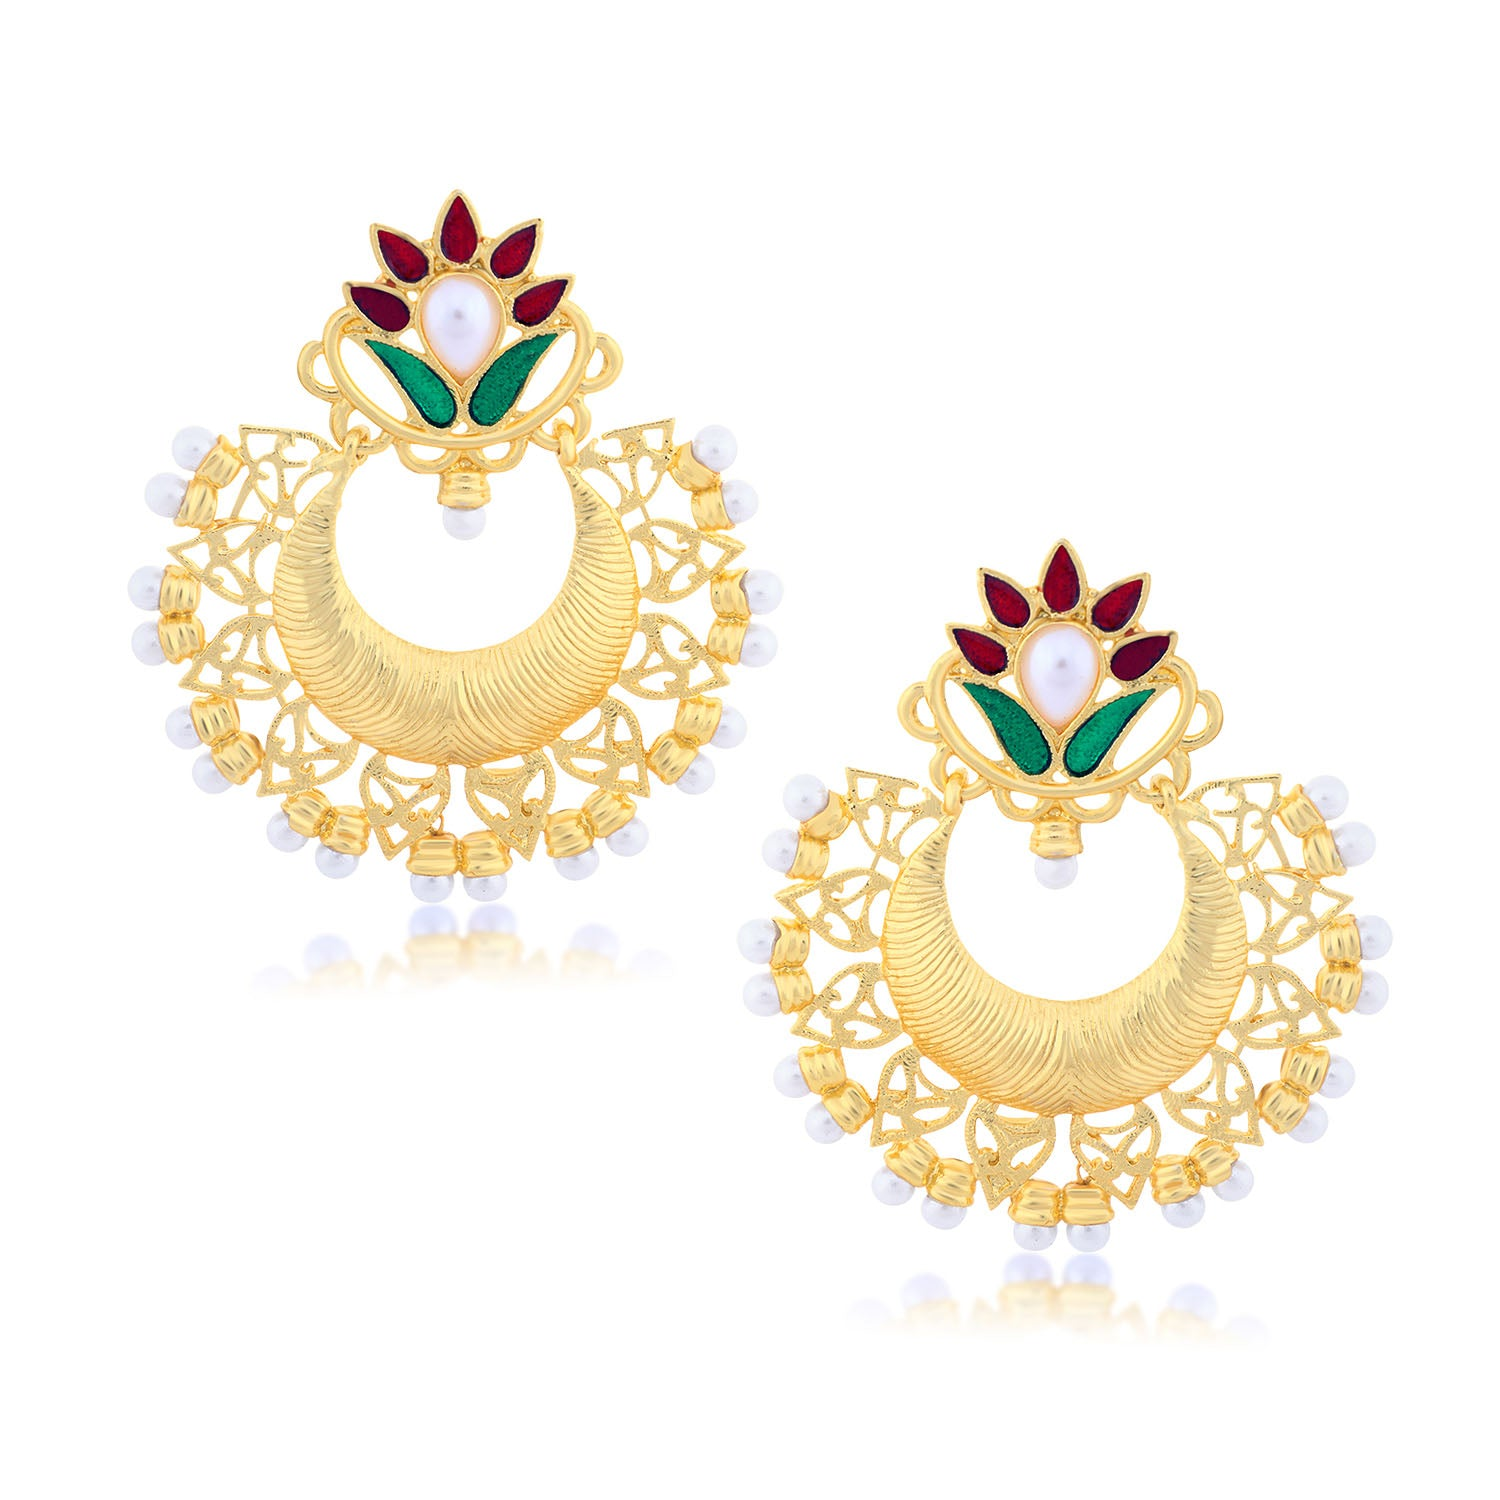 Sukkhi Excellent Chand Bali Gold Plated Earring for women-SUKKHI1-E78369